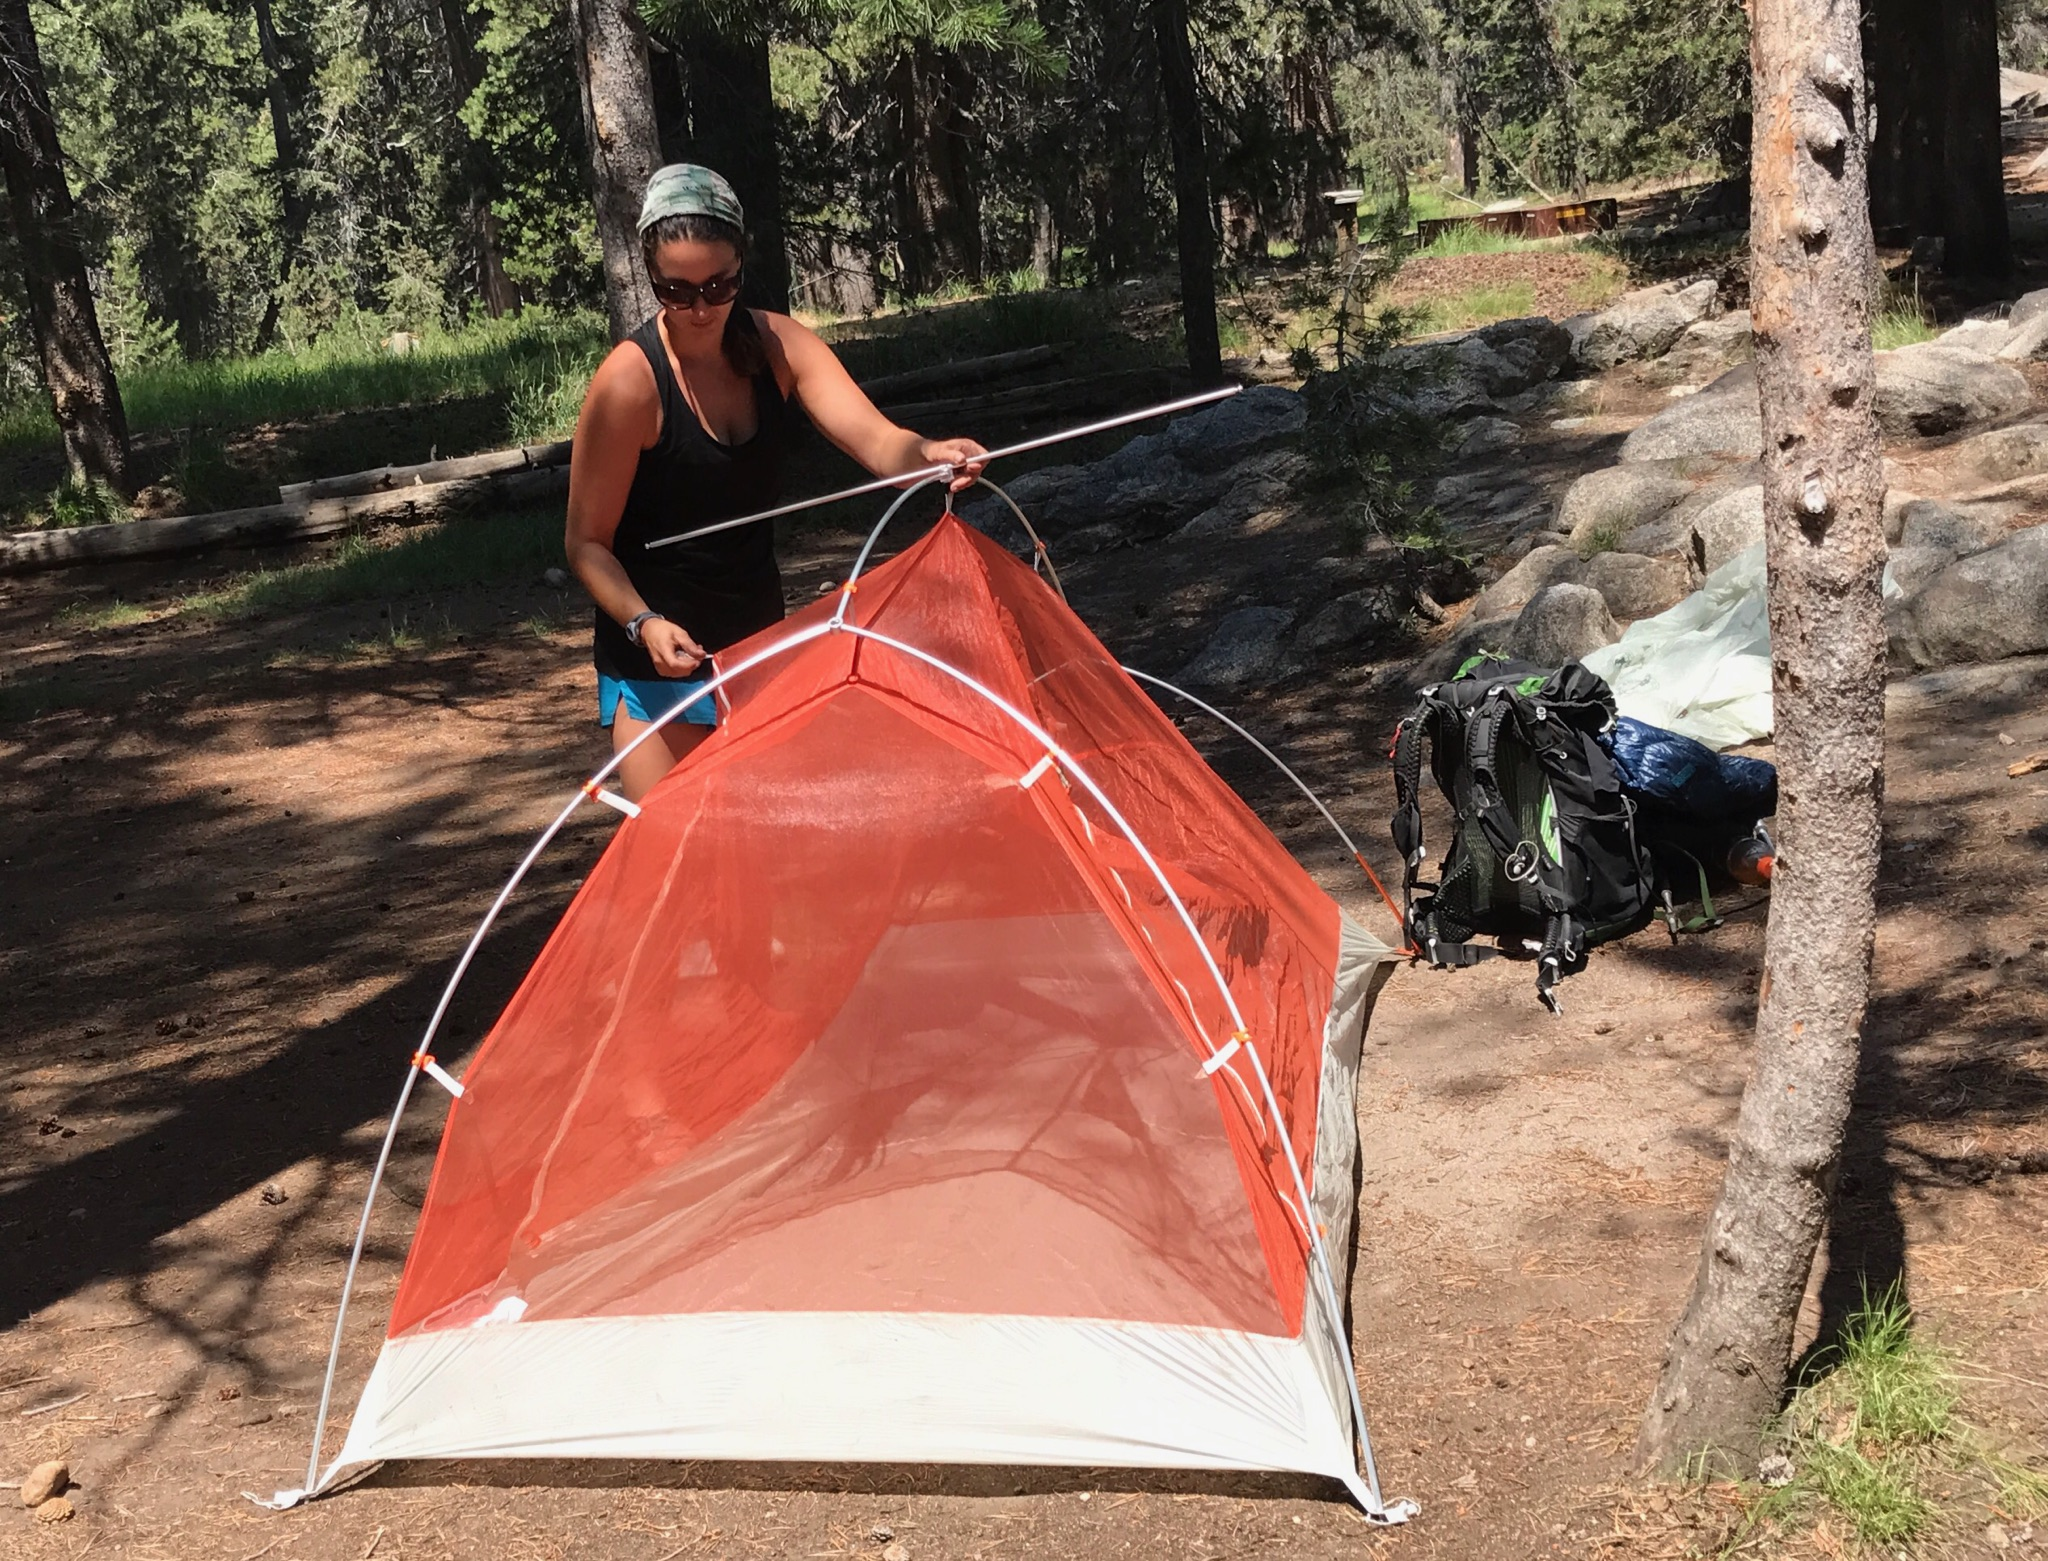 Gear Review Big Agnes Copper Spur 2 Platinum The Trek It would have to be big spur:big pinion vs small spur:small pinion with same gear ratio. big agnes copper spur 2 platinum